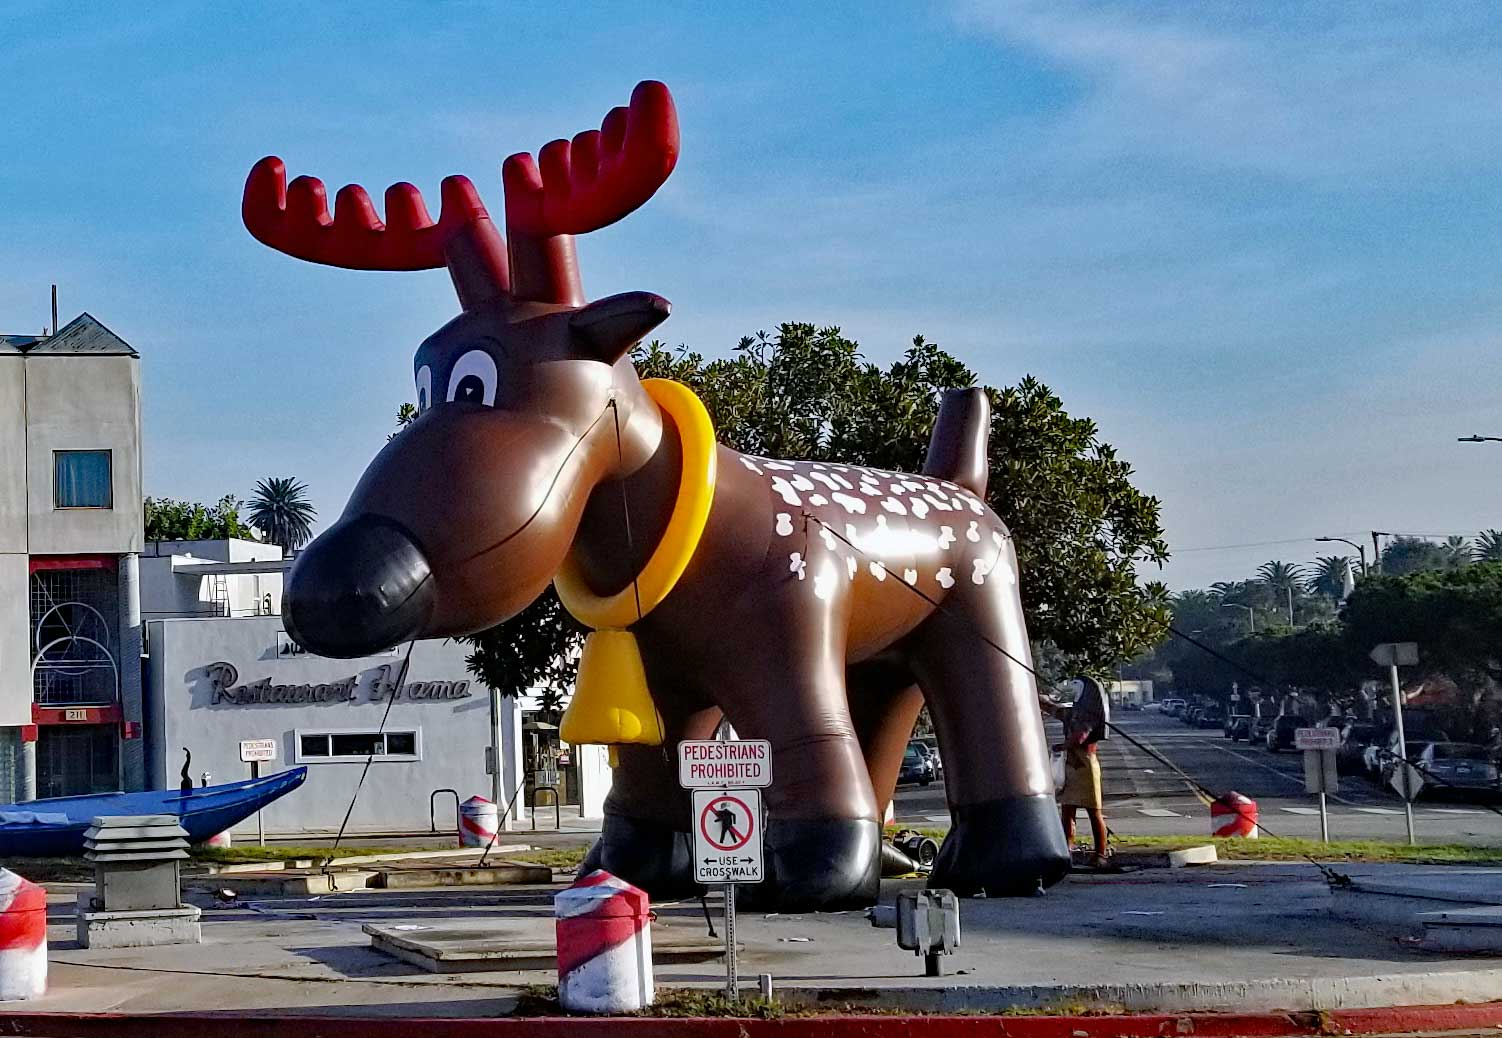 Rudolph the reindeer at the Windward Circle in Venice.